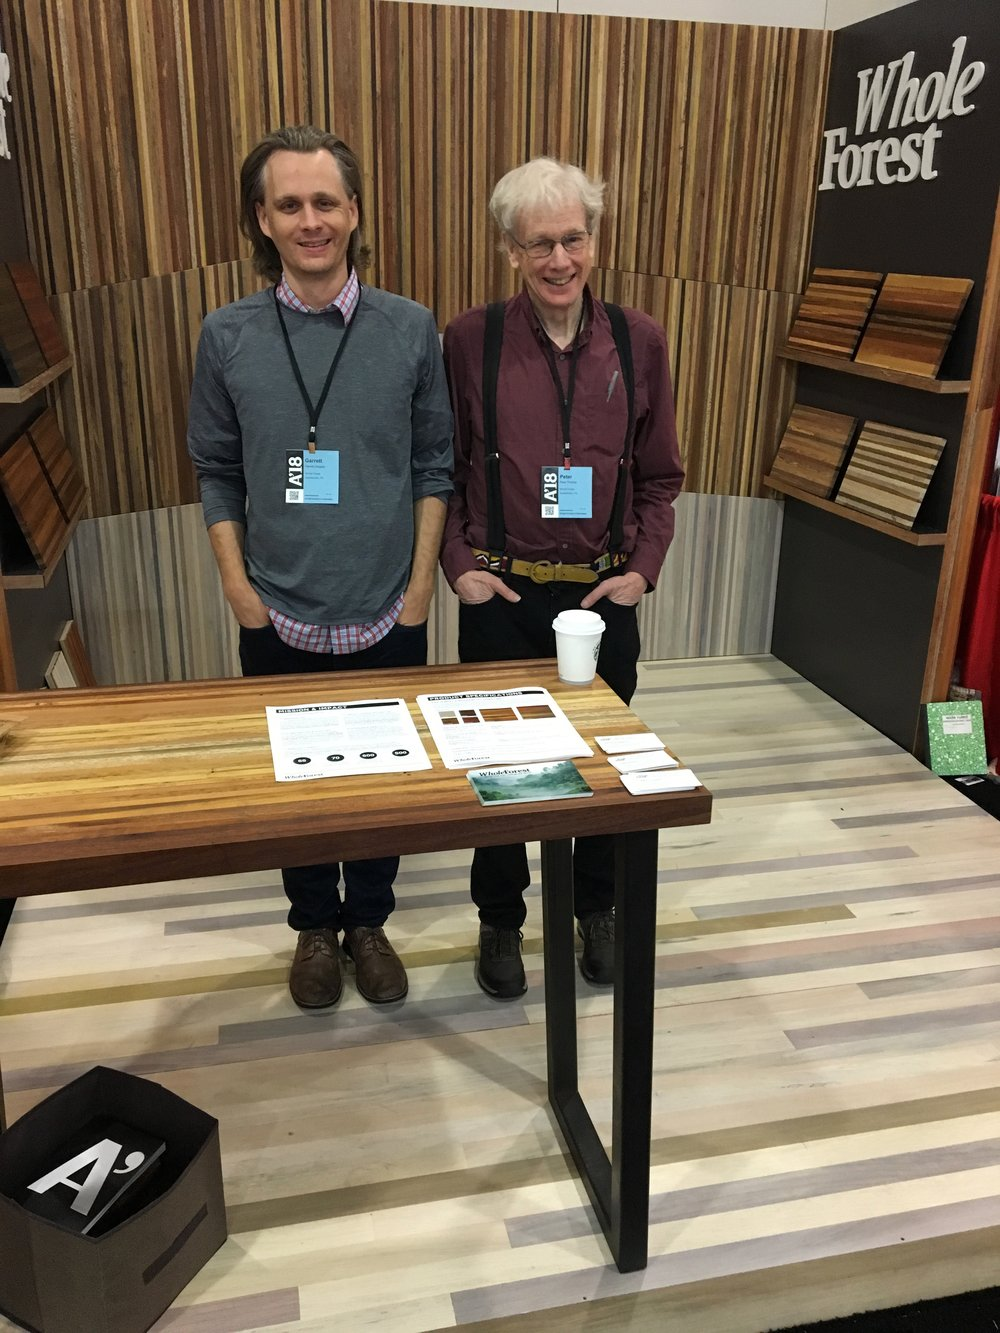 Whole Forest entrepreneurs. From left to right: Garrett Siegers, GM of Ecuadorian Operations; Peter Pinchot, CEO